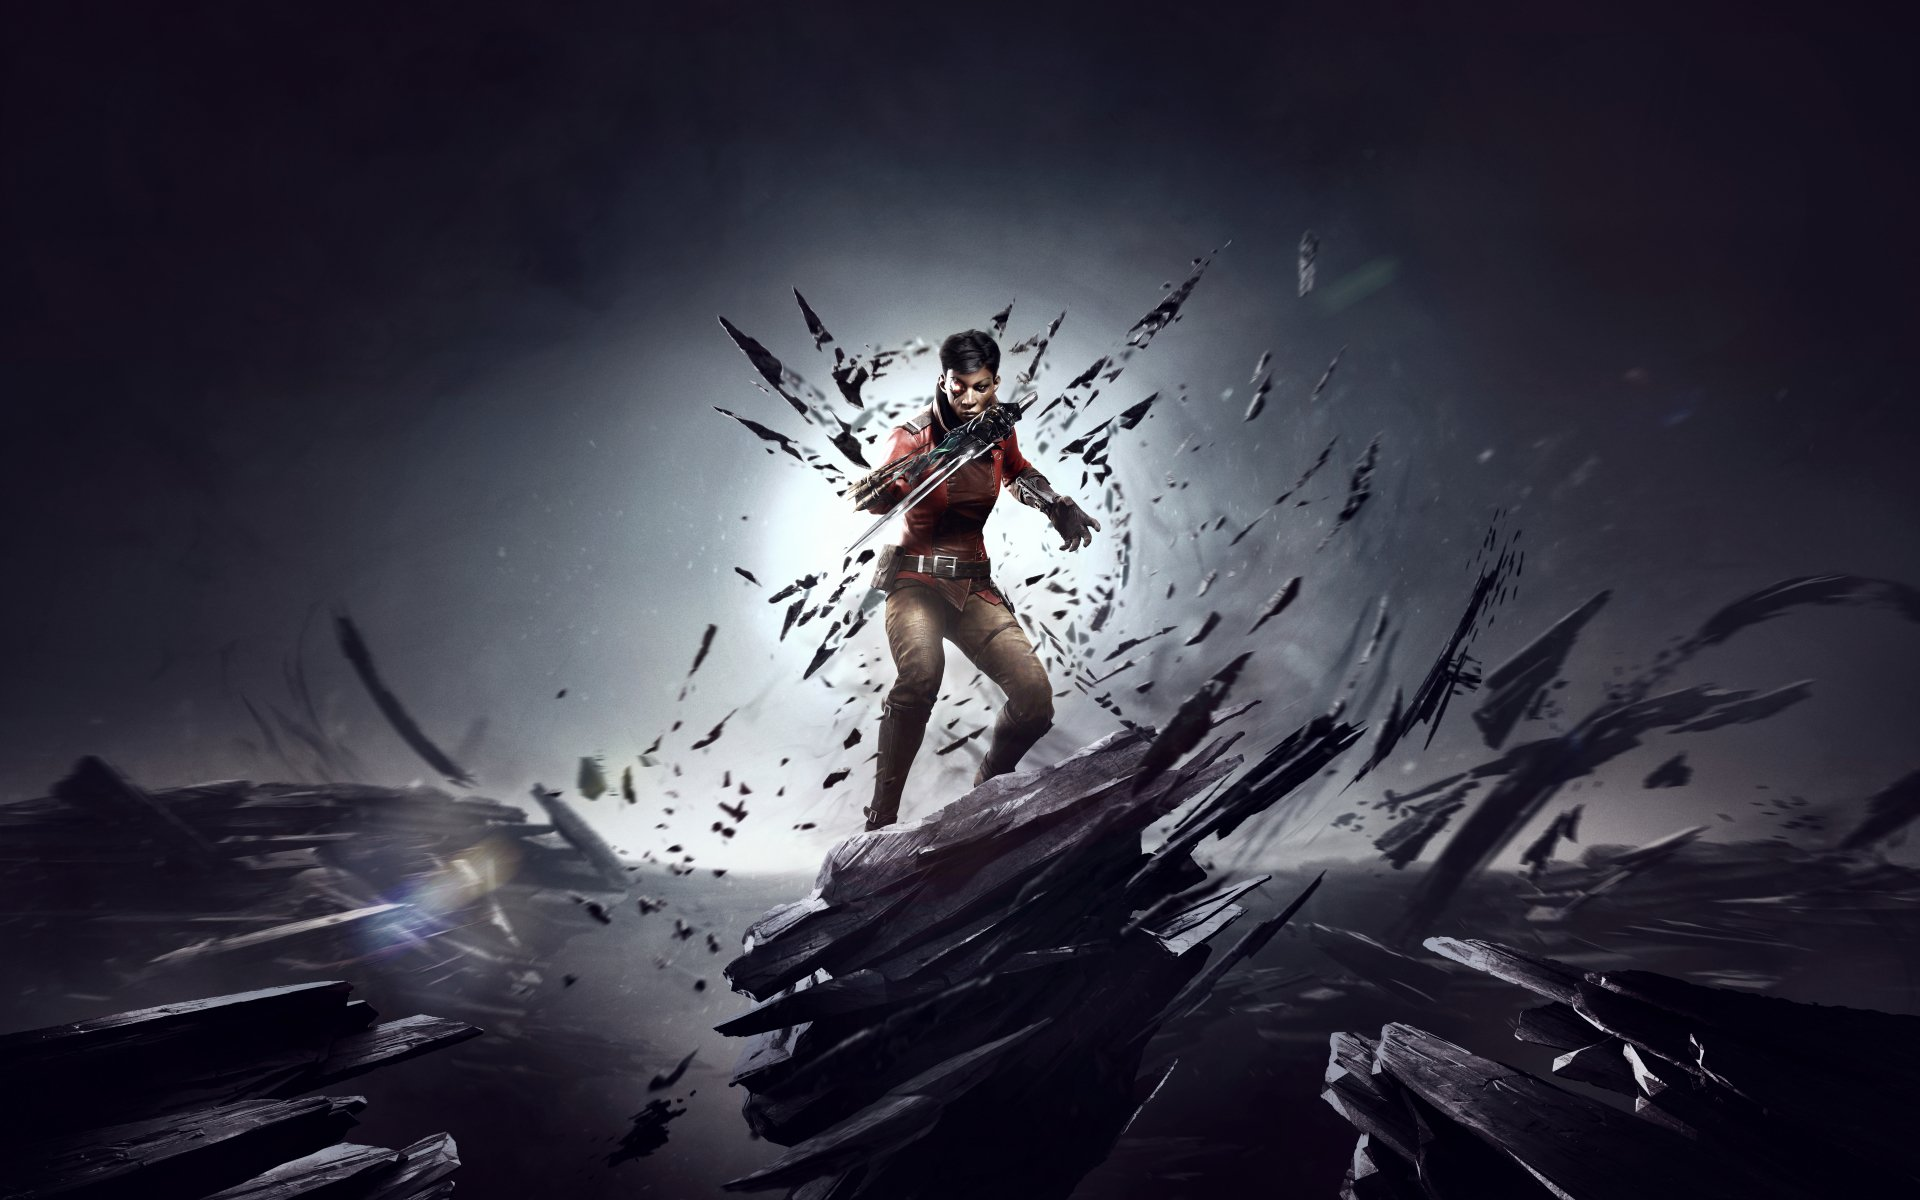 Dishonored Death of the Outsider 8k Ultra HD Wallpaper 1920x1200